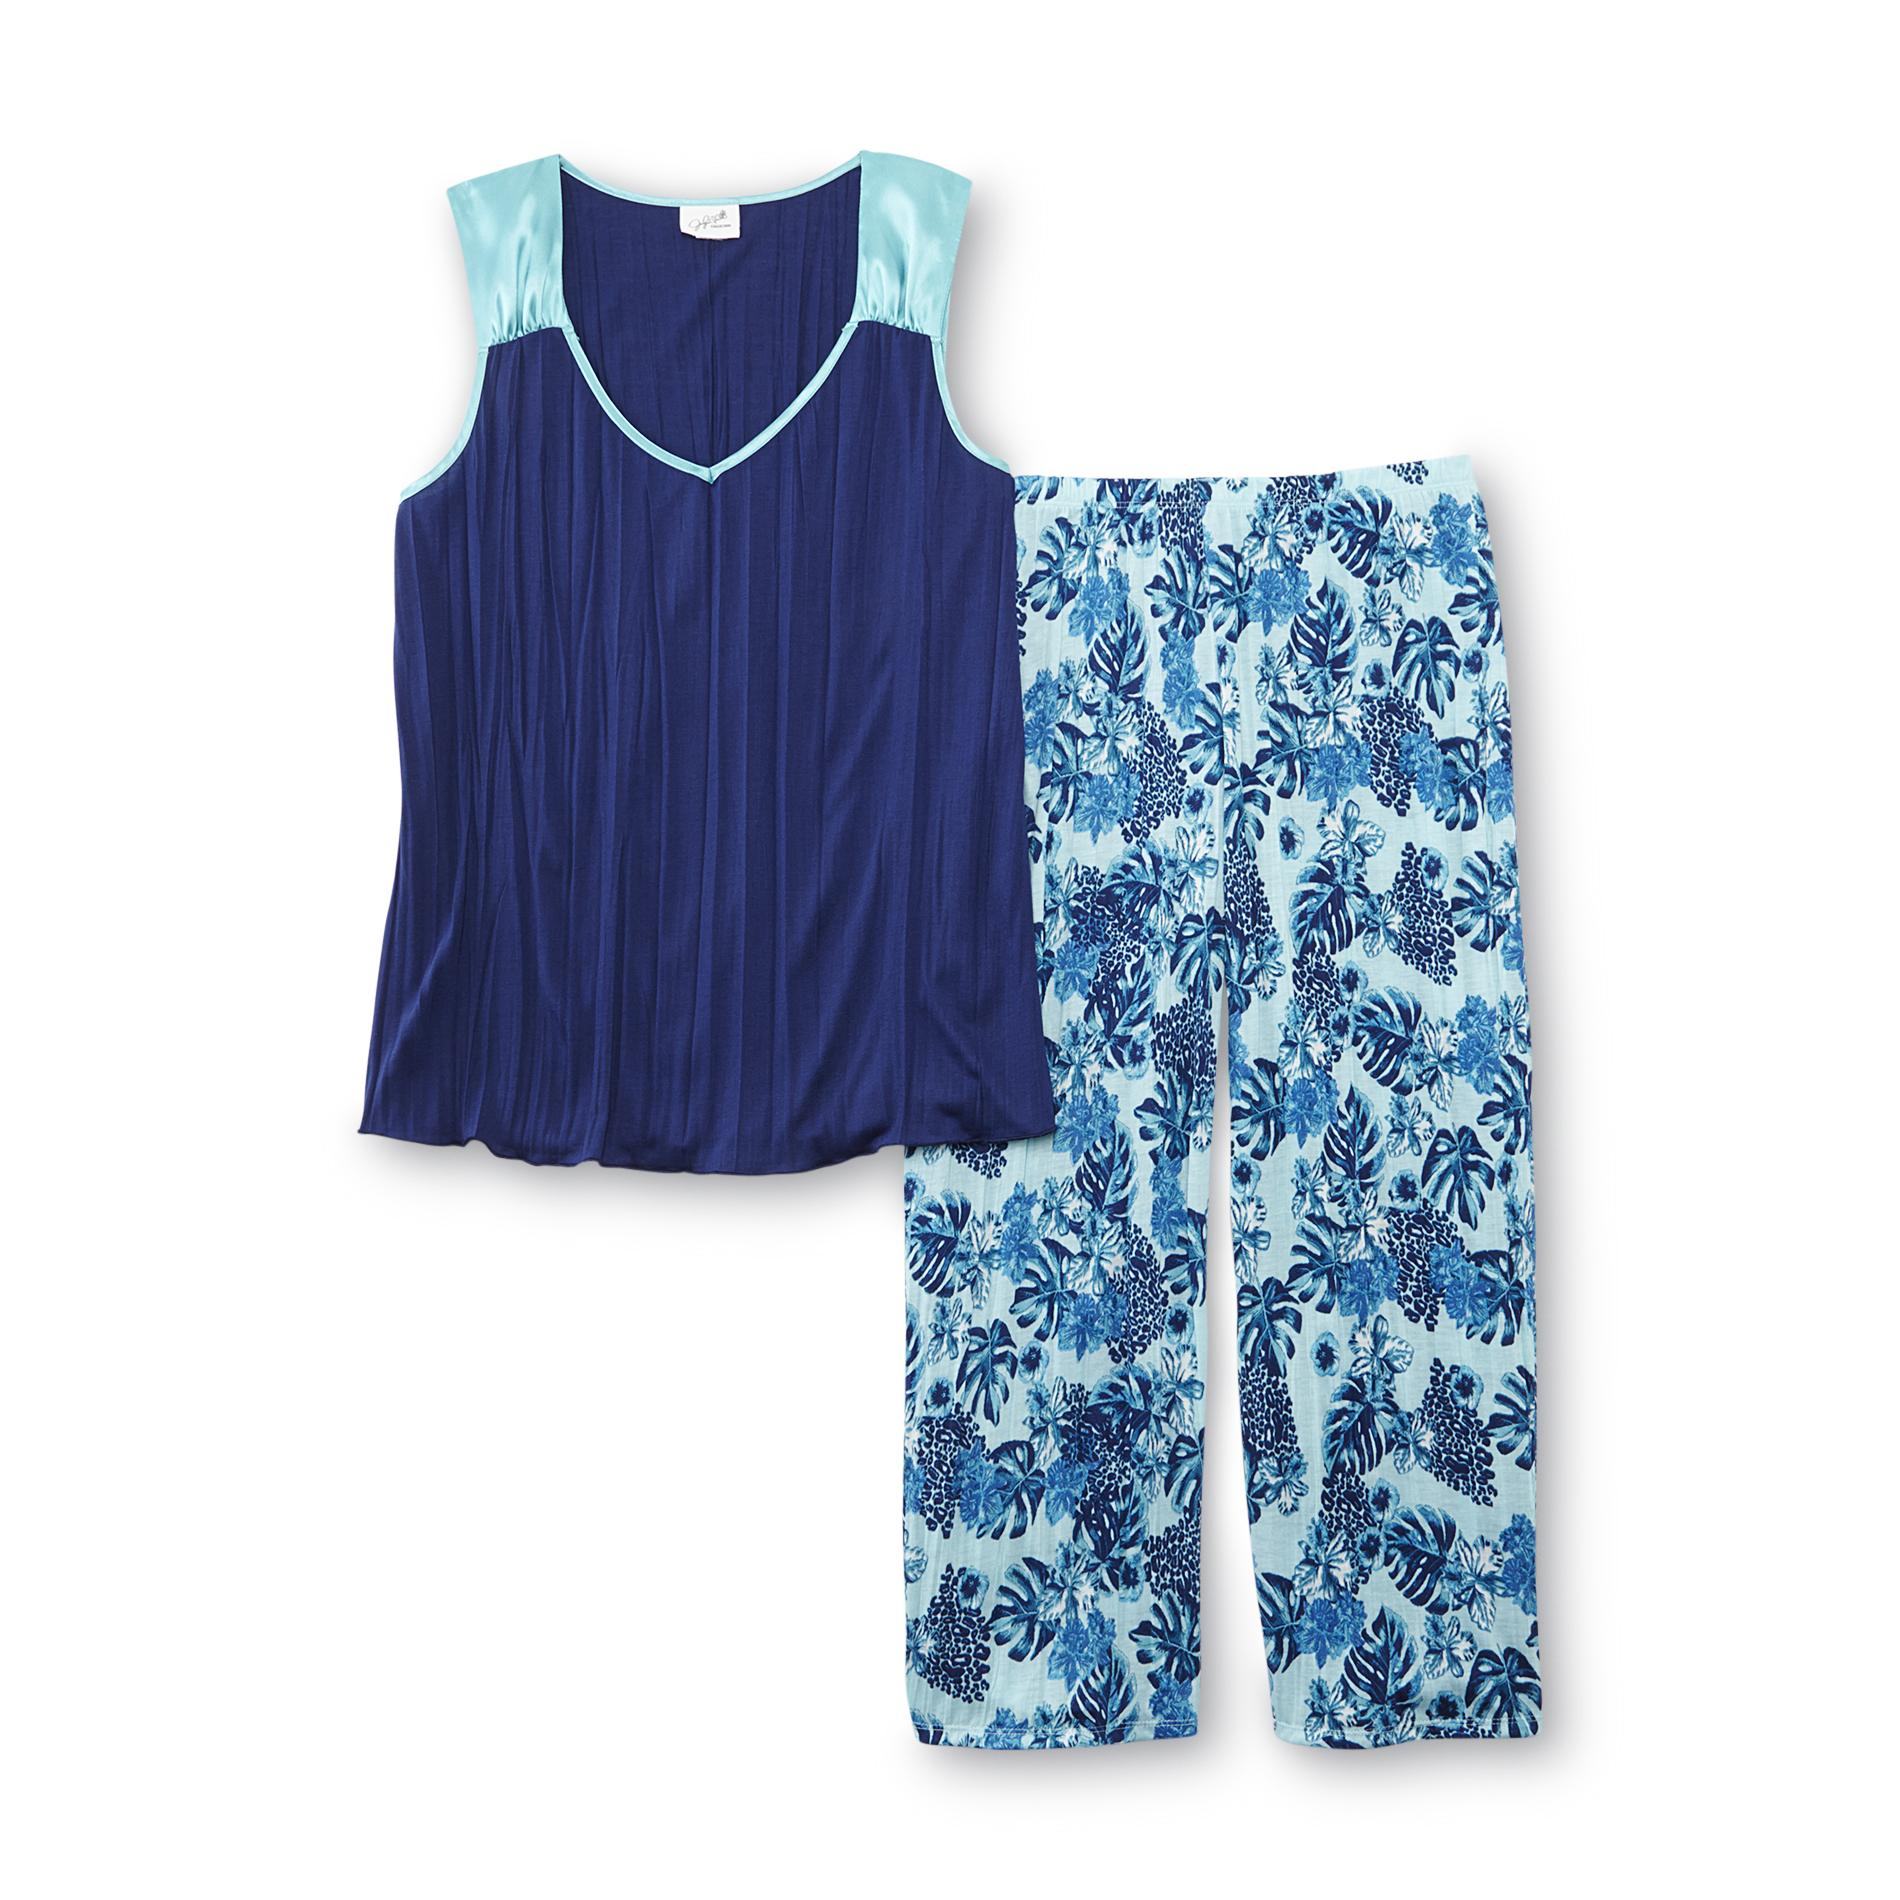 Tropical Print Tops for Women